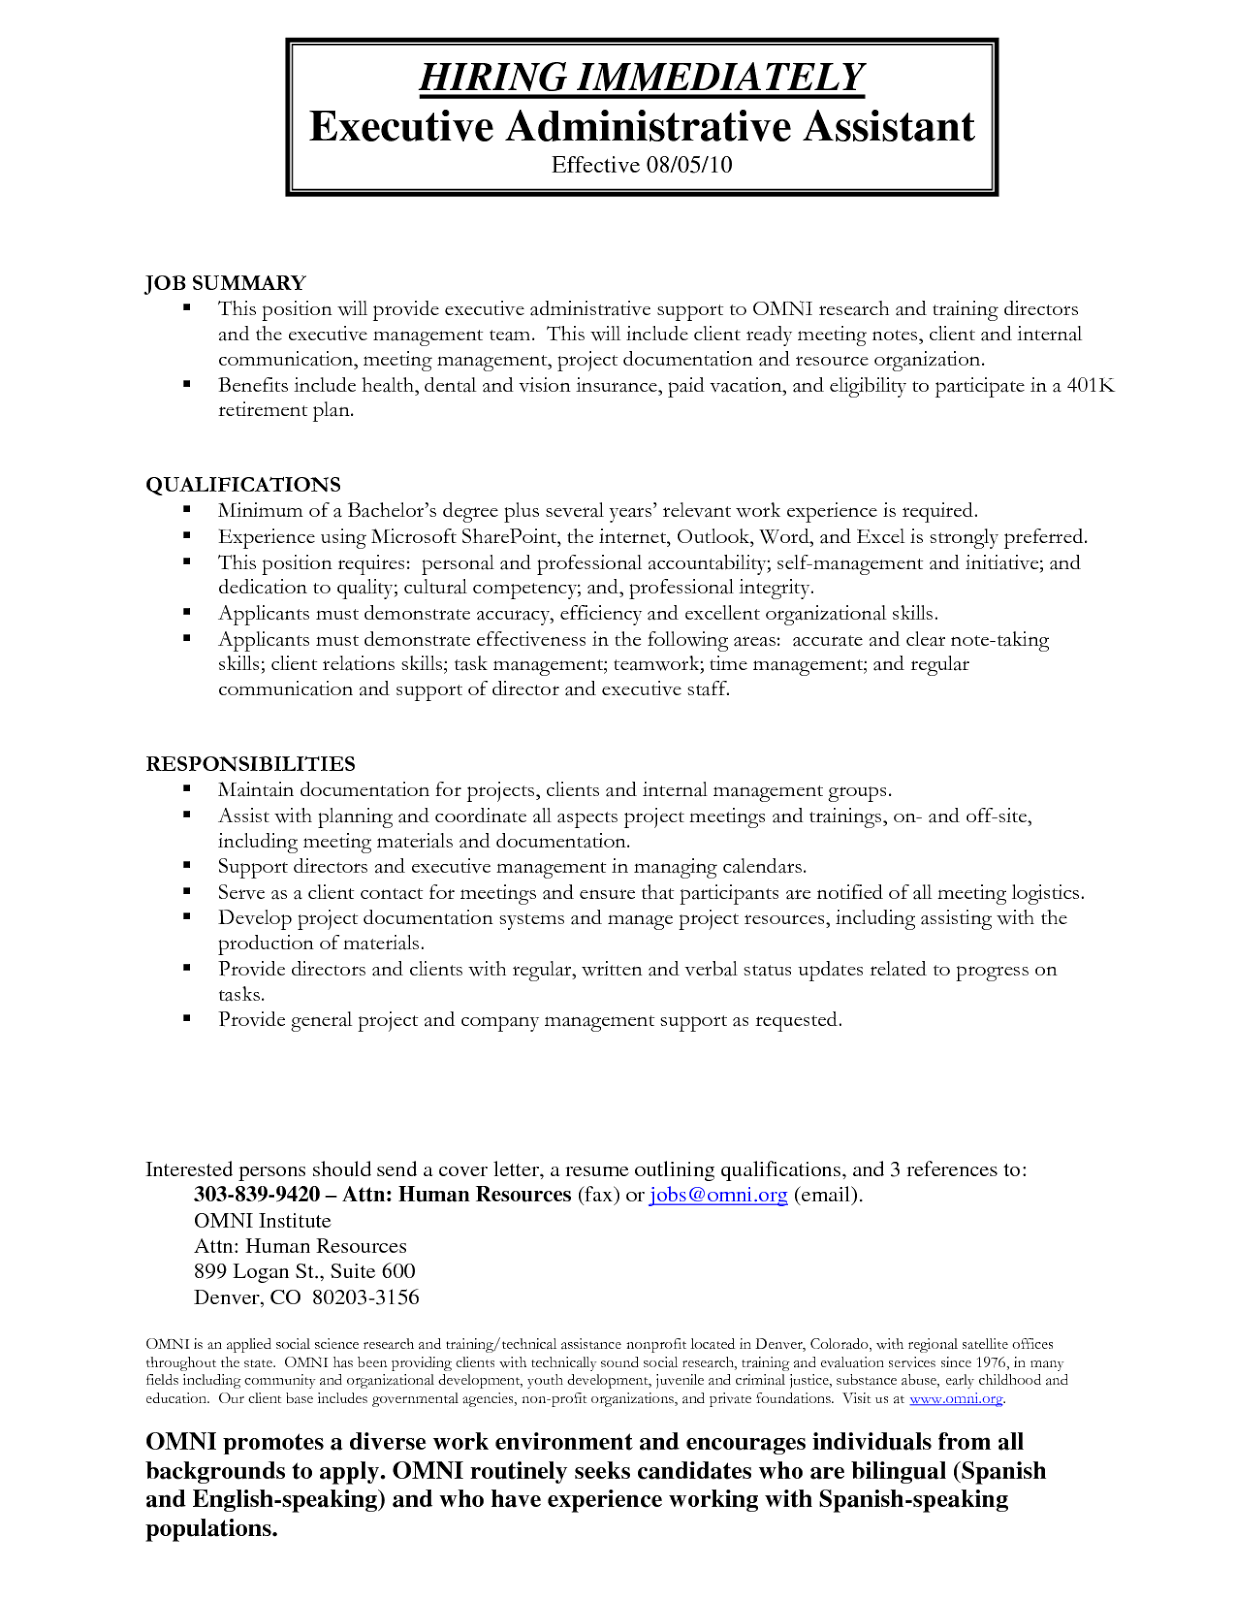 Executive Assistant Resume administrative assistant resume sample Resume Administrative Assistant